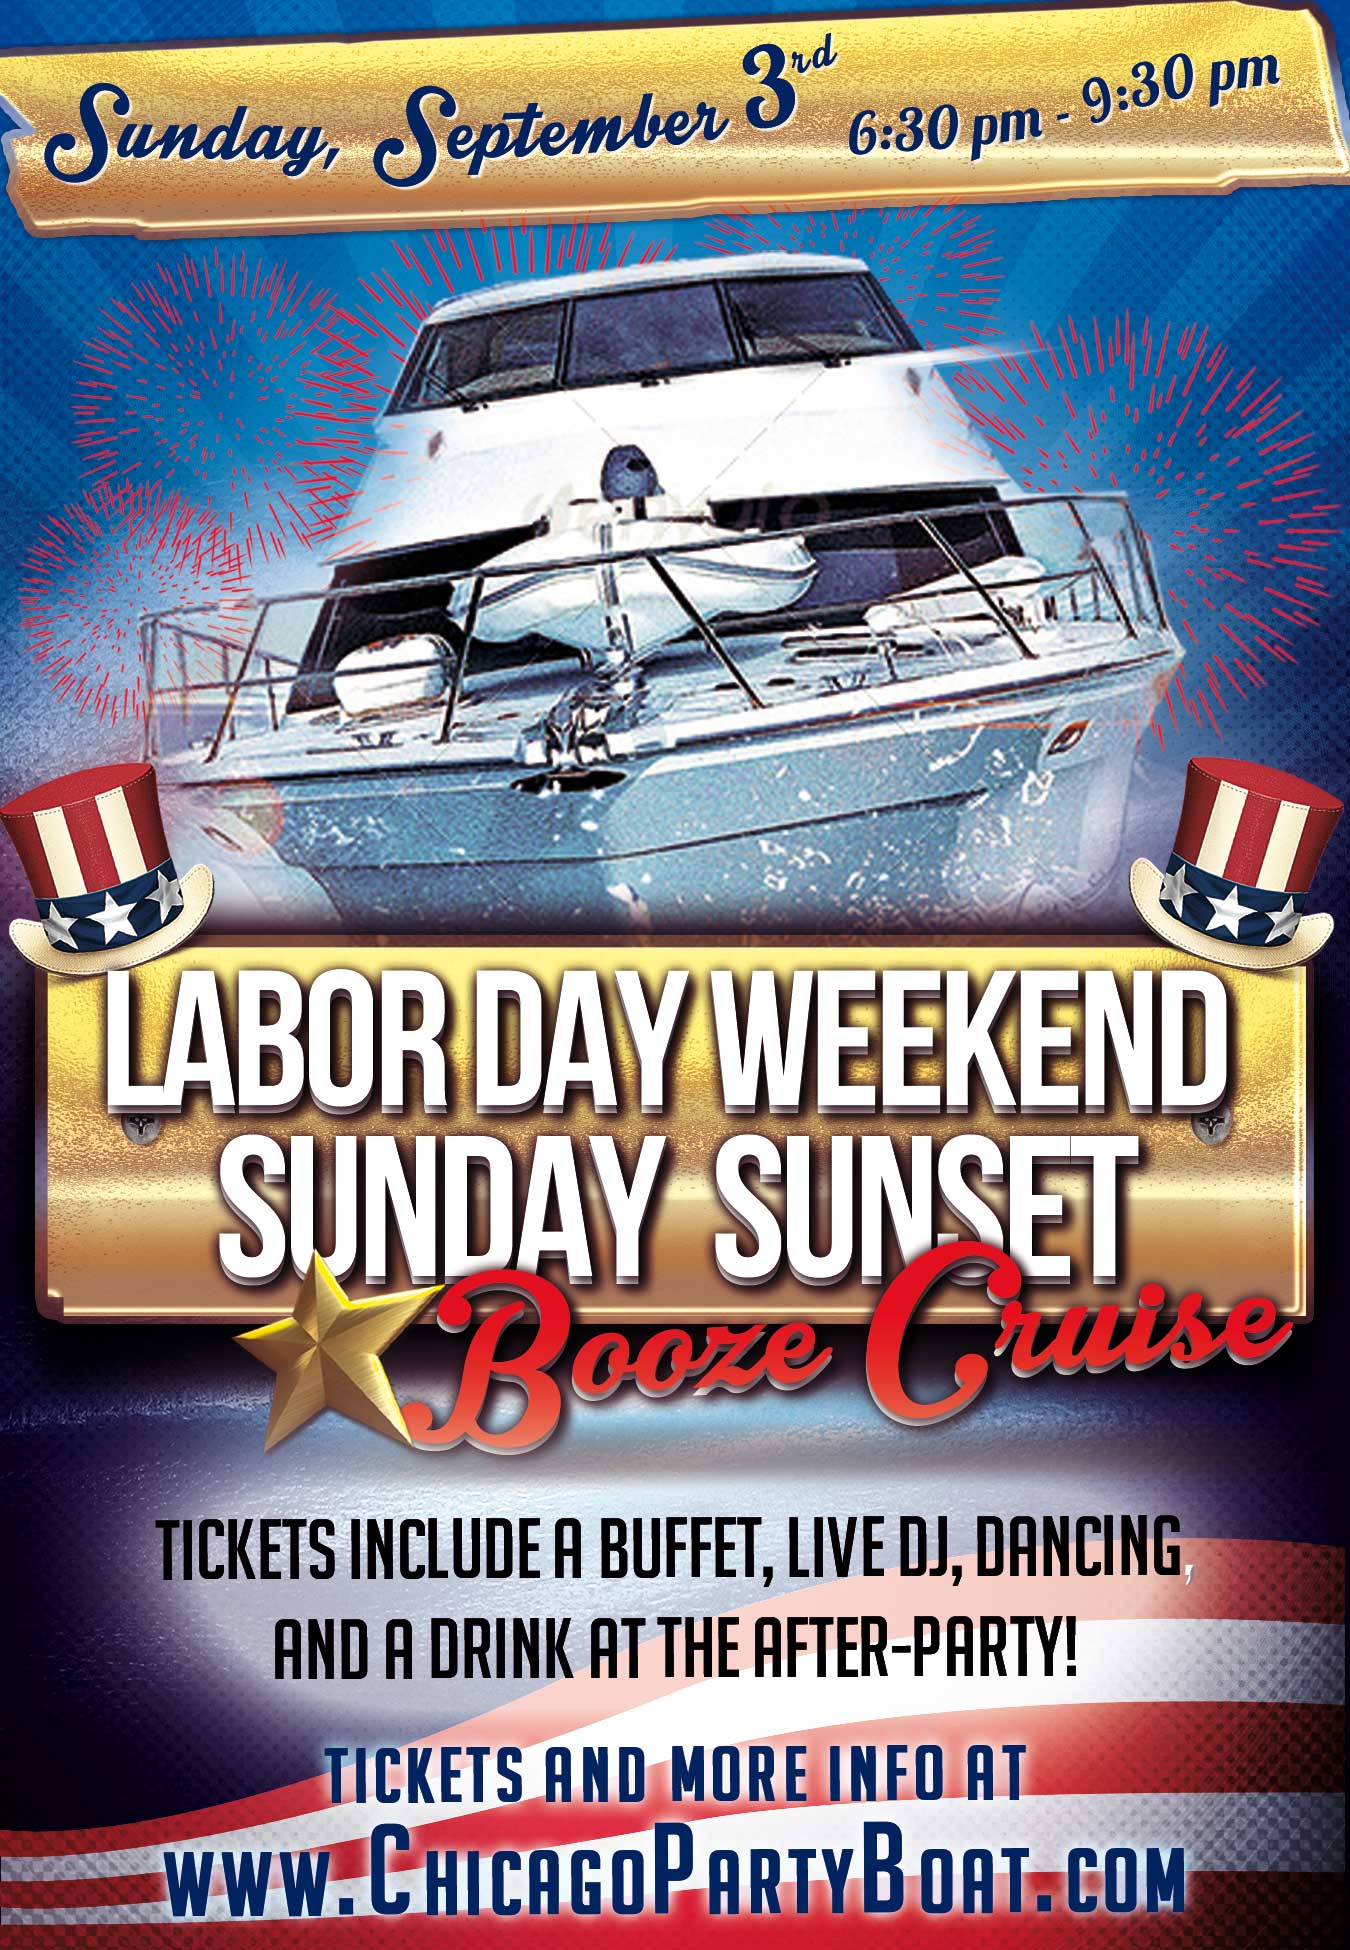 Labor Day Weekend Sunday Sunset Booze Cruise Party - Come out on our four story luxury yacht for a cruise on Lake Michigan! Tickets include a Buffet, Live DJ, Dancing, and A Drink At The After-Party!